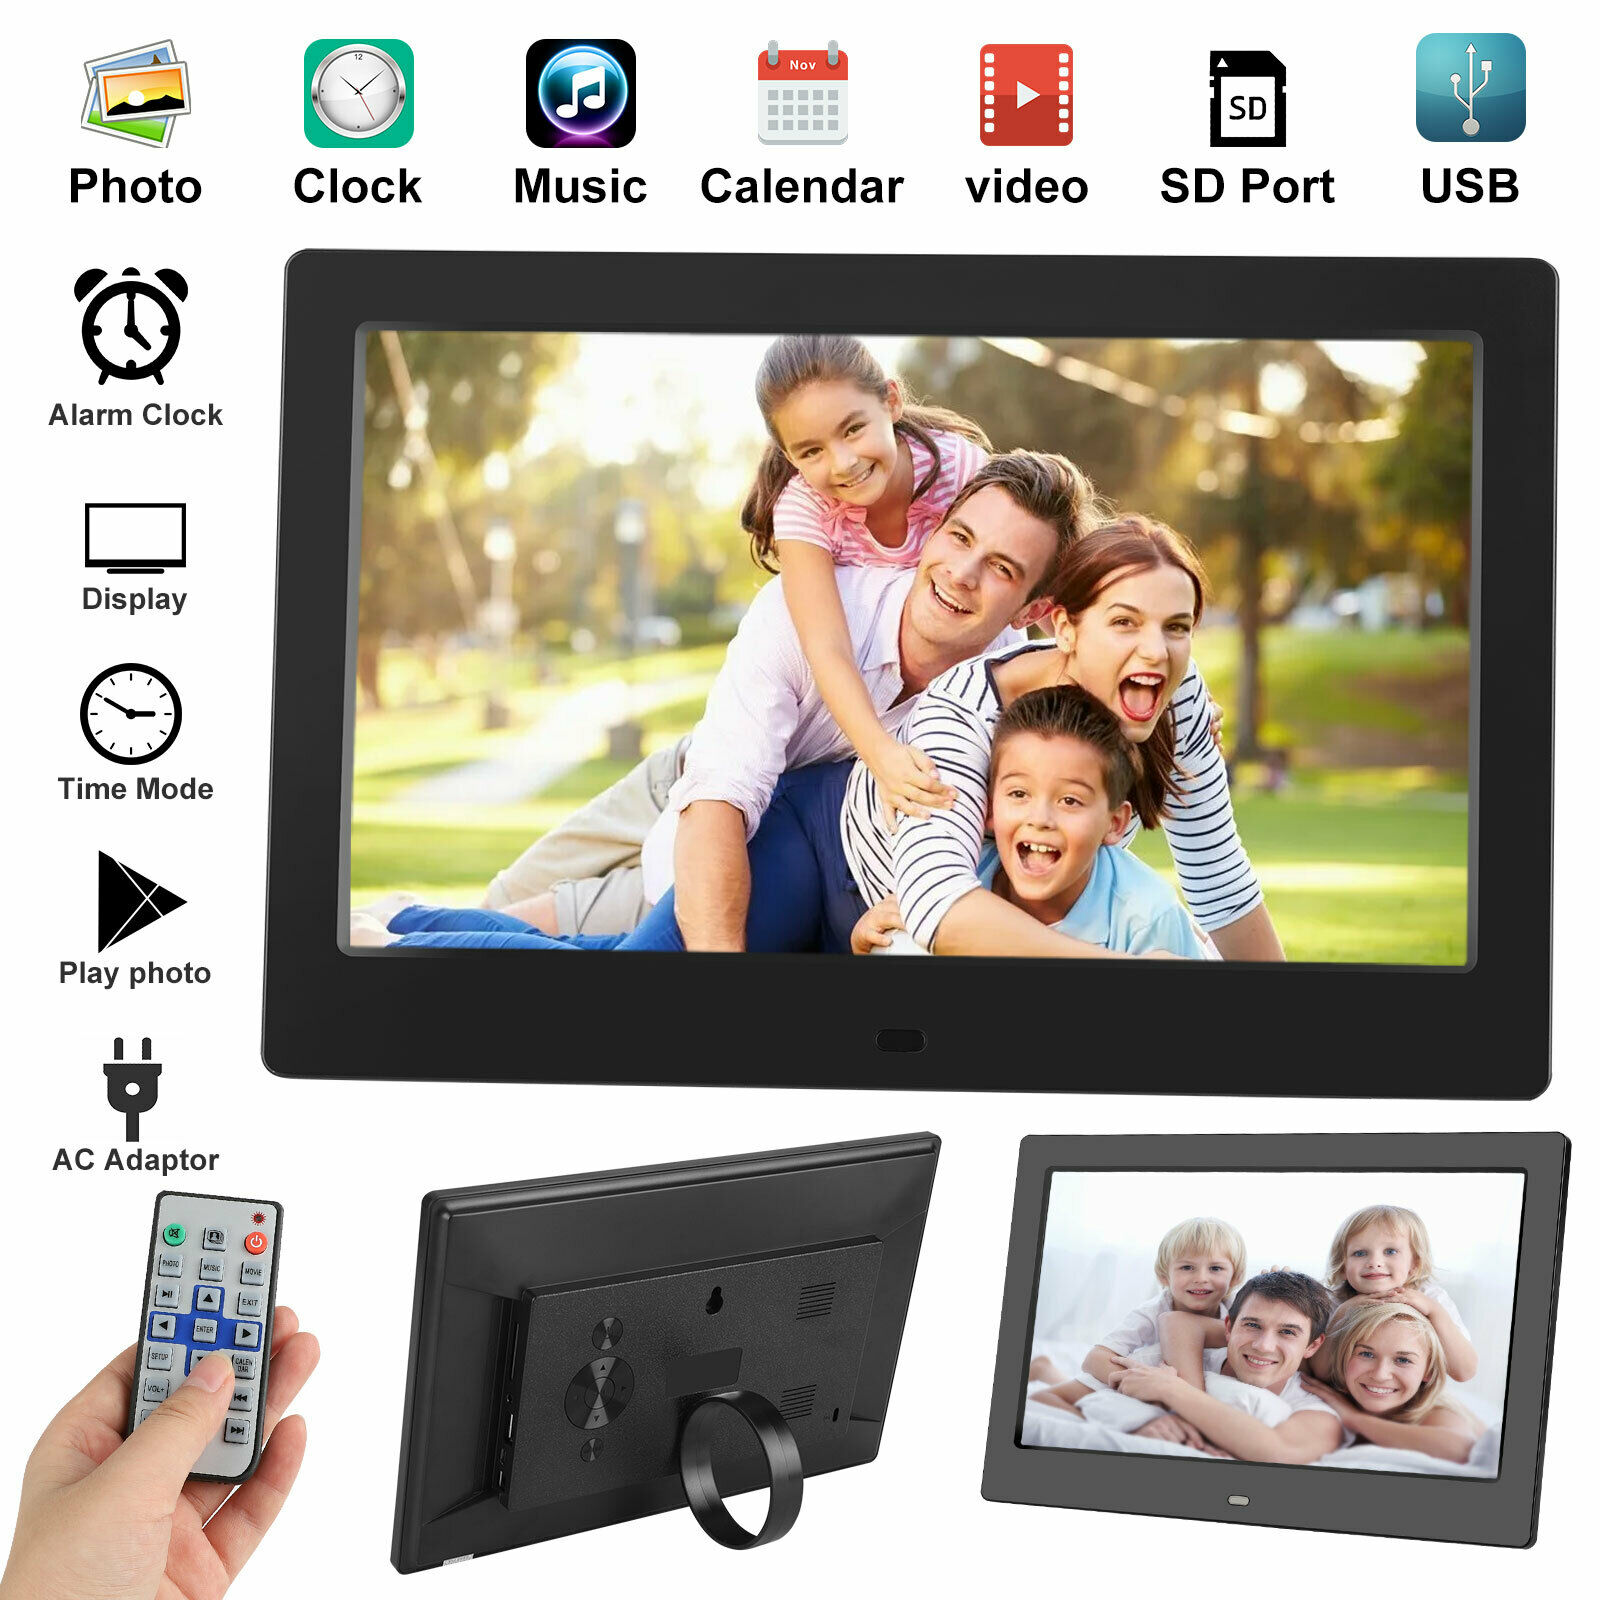 New 10 inch Lcd Widescreen Digital Photo Frame Electronic Picture Video Player Movie Album HD Dispaly Photo Frame Digital